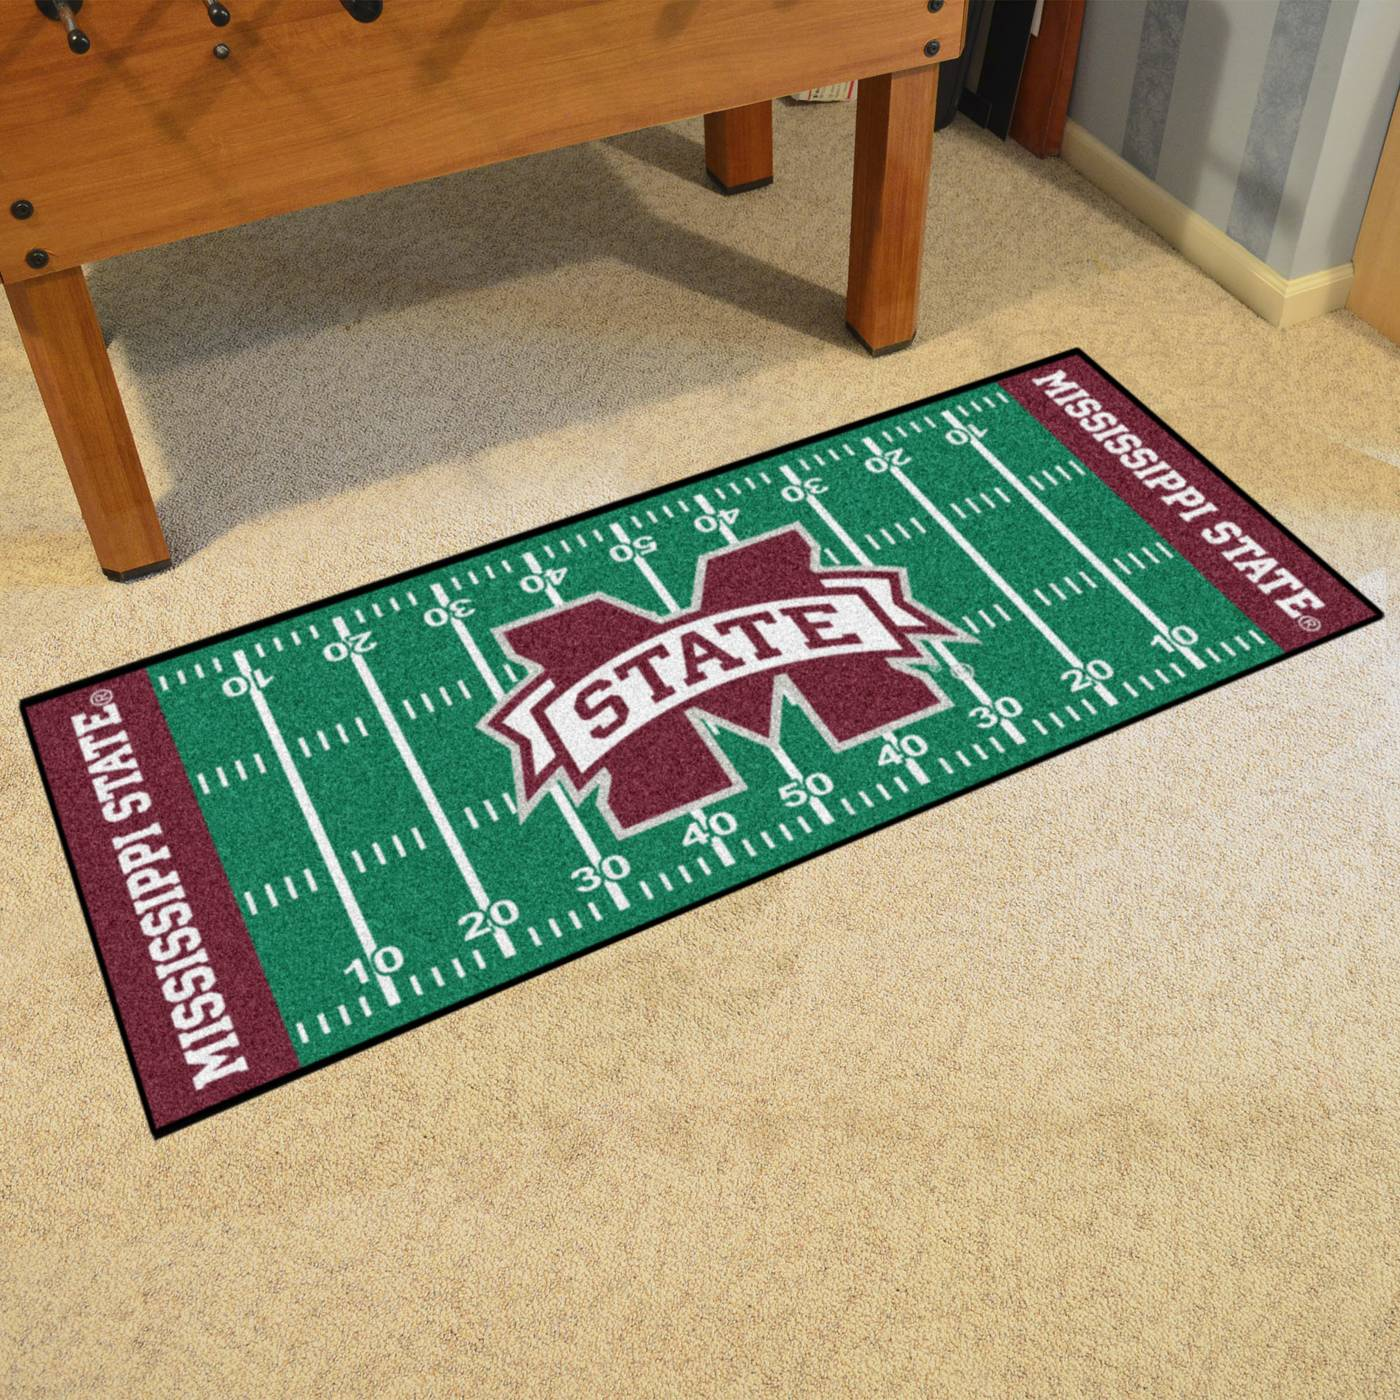 Nebraska Cornhuskers Blackshirts Football Field Runner Rug: Mississippi State Bulldogs Football Field Runner Rug